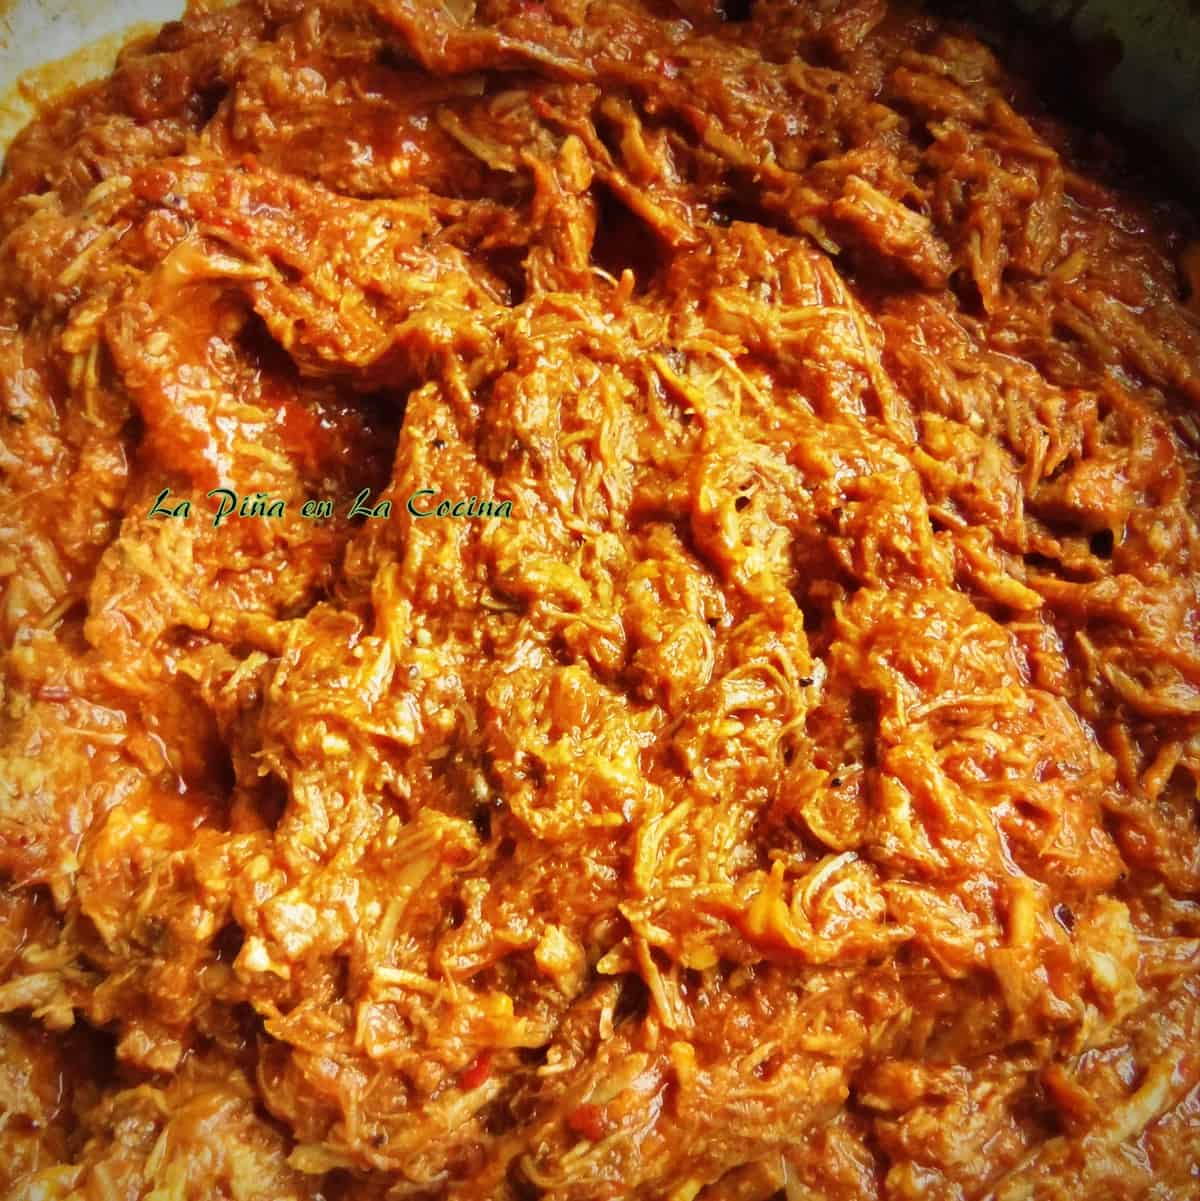 Cochinita Pibil Style Shredded Pork